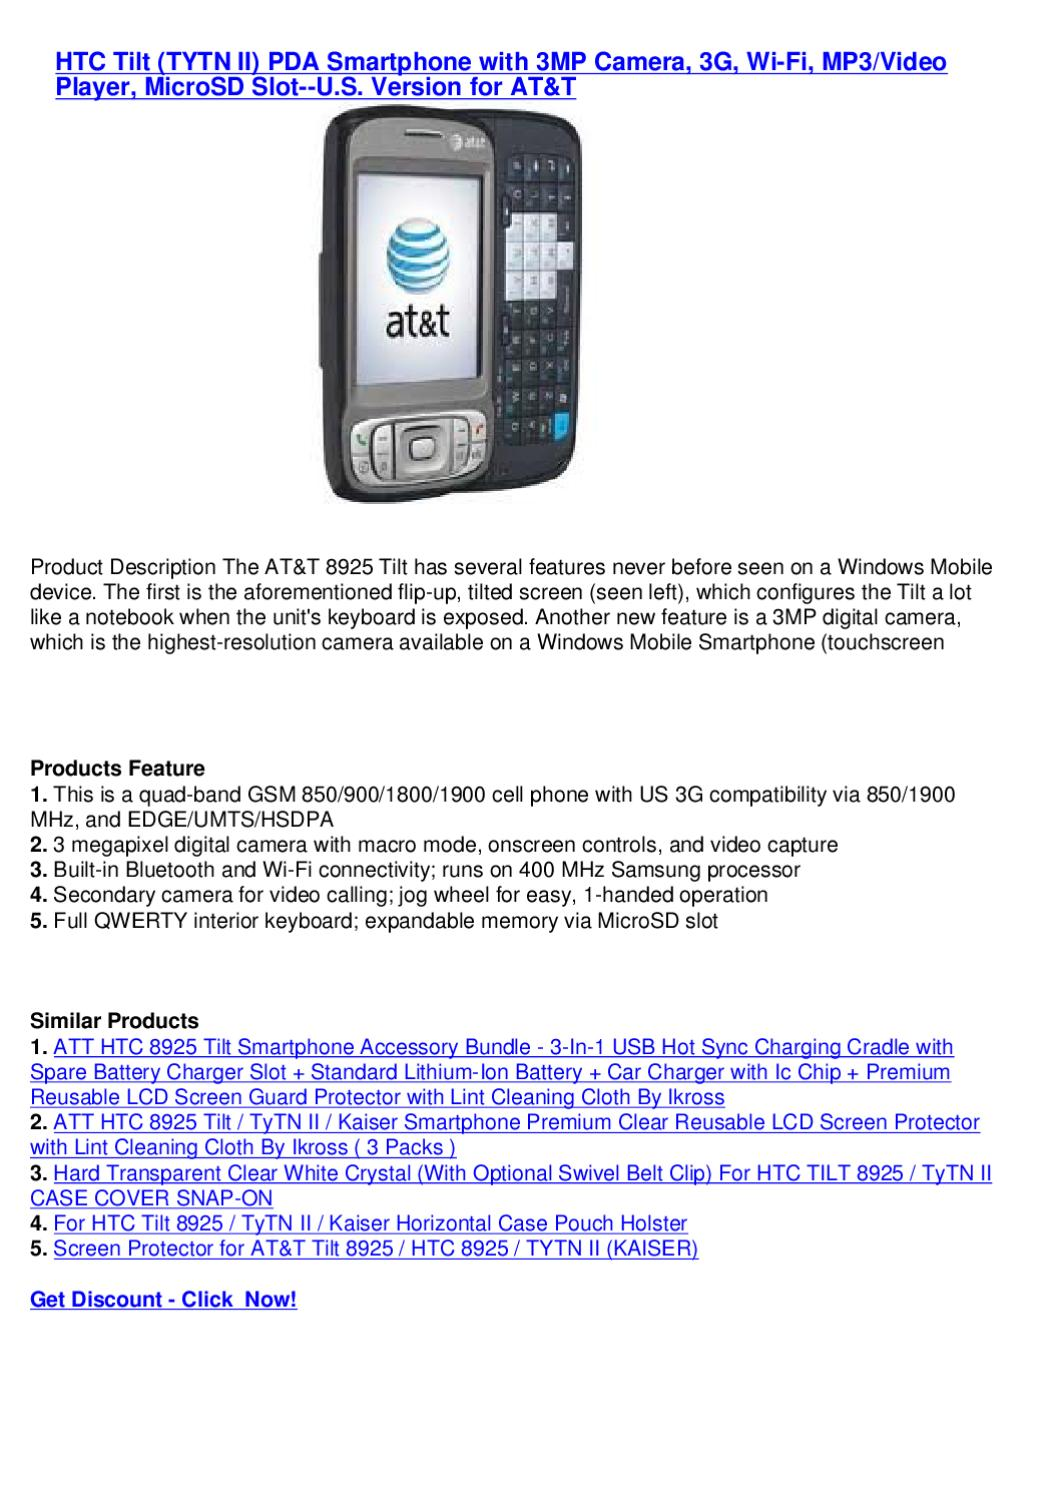 HTC Tilt (TYTN II) PDA Smartphone with 3MP Camera, 3G, Wi-Fi